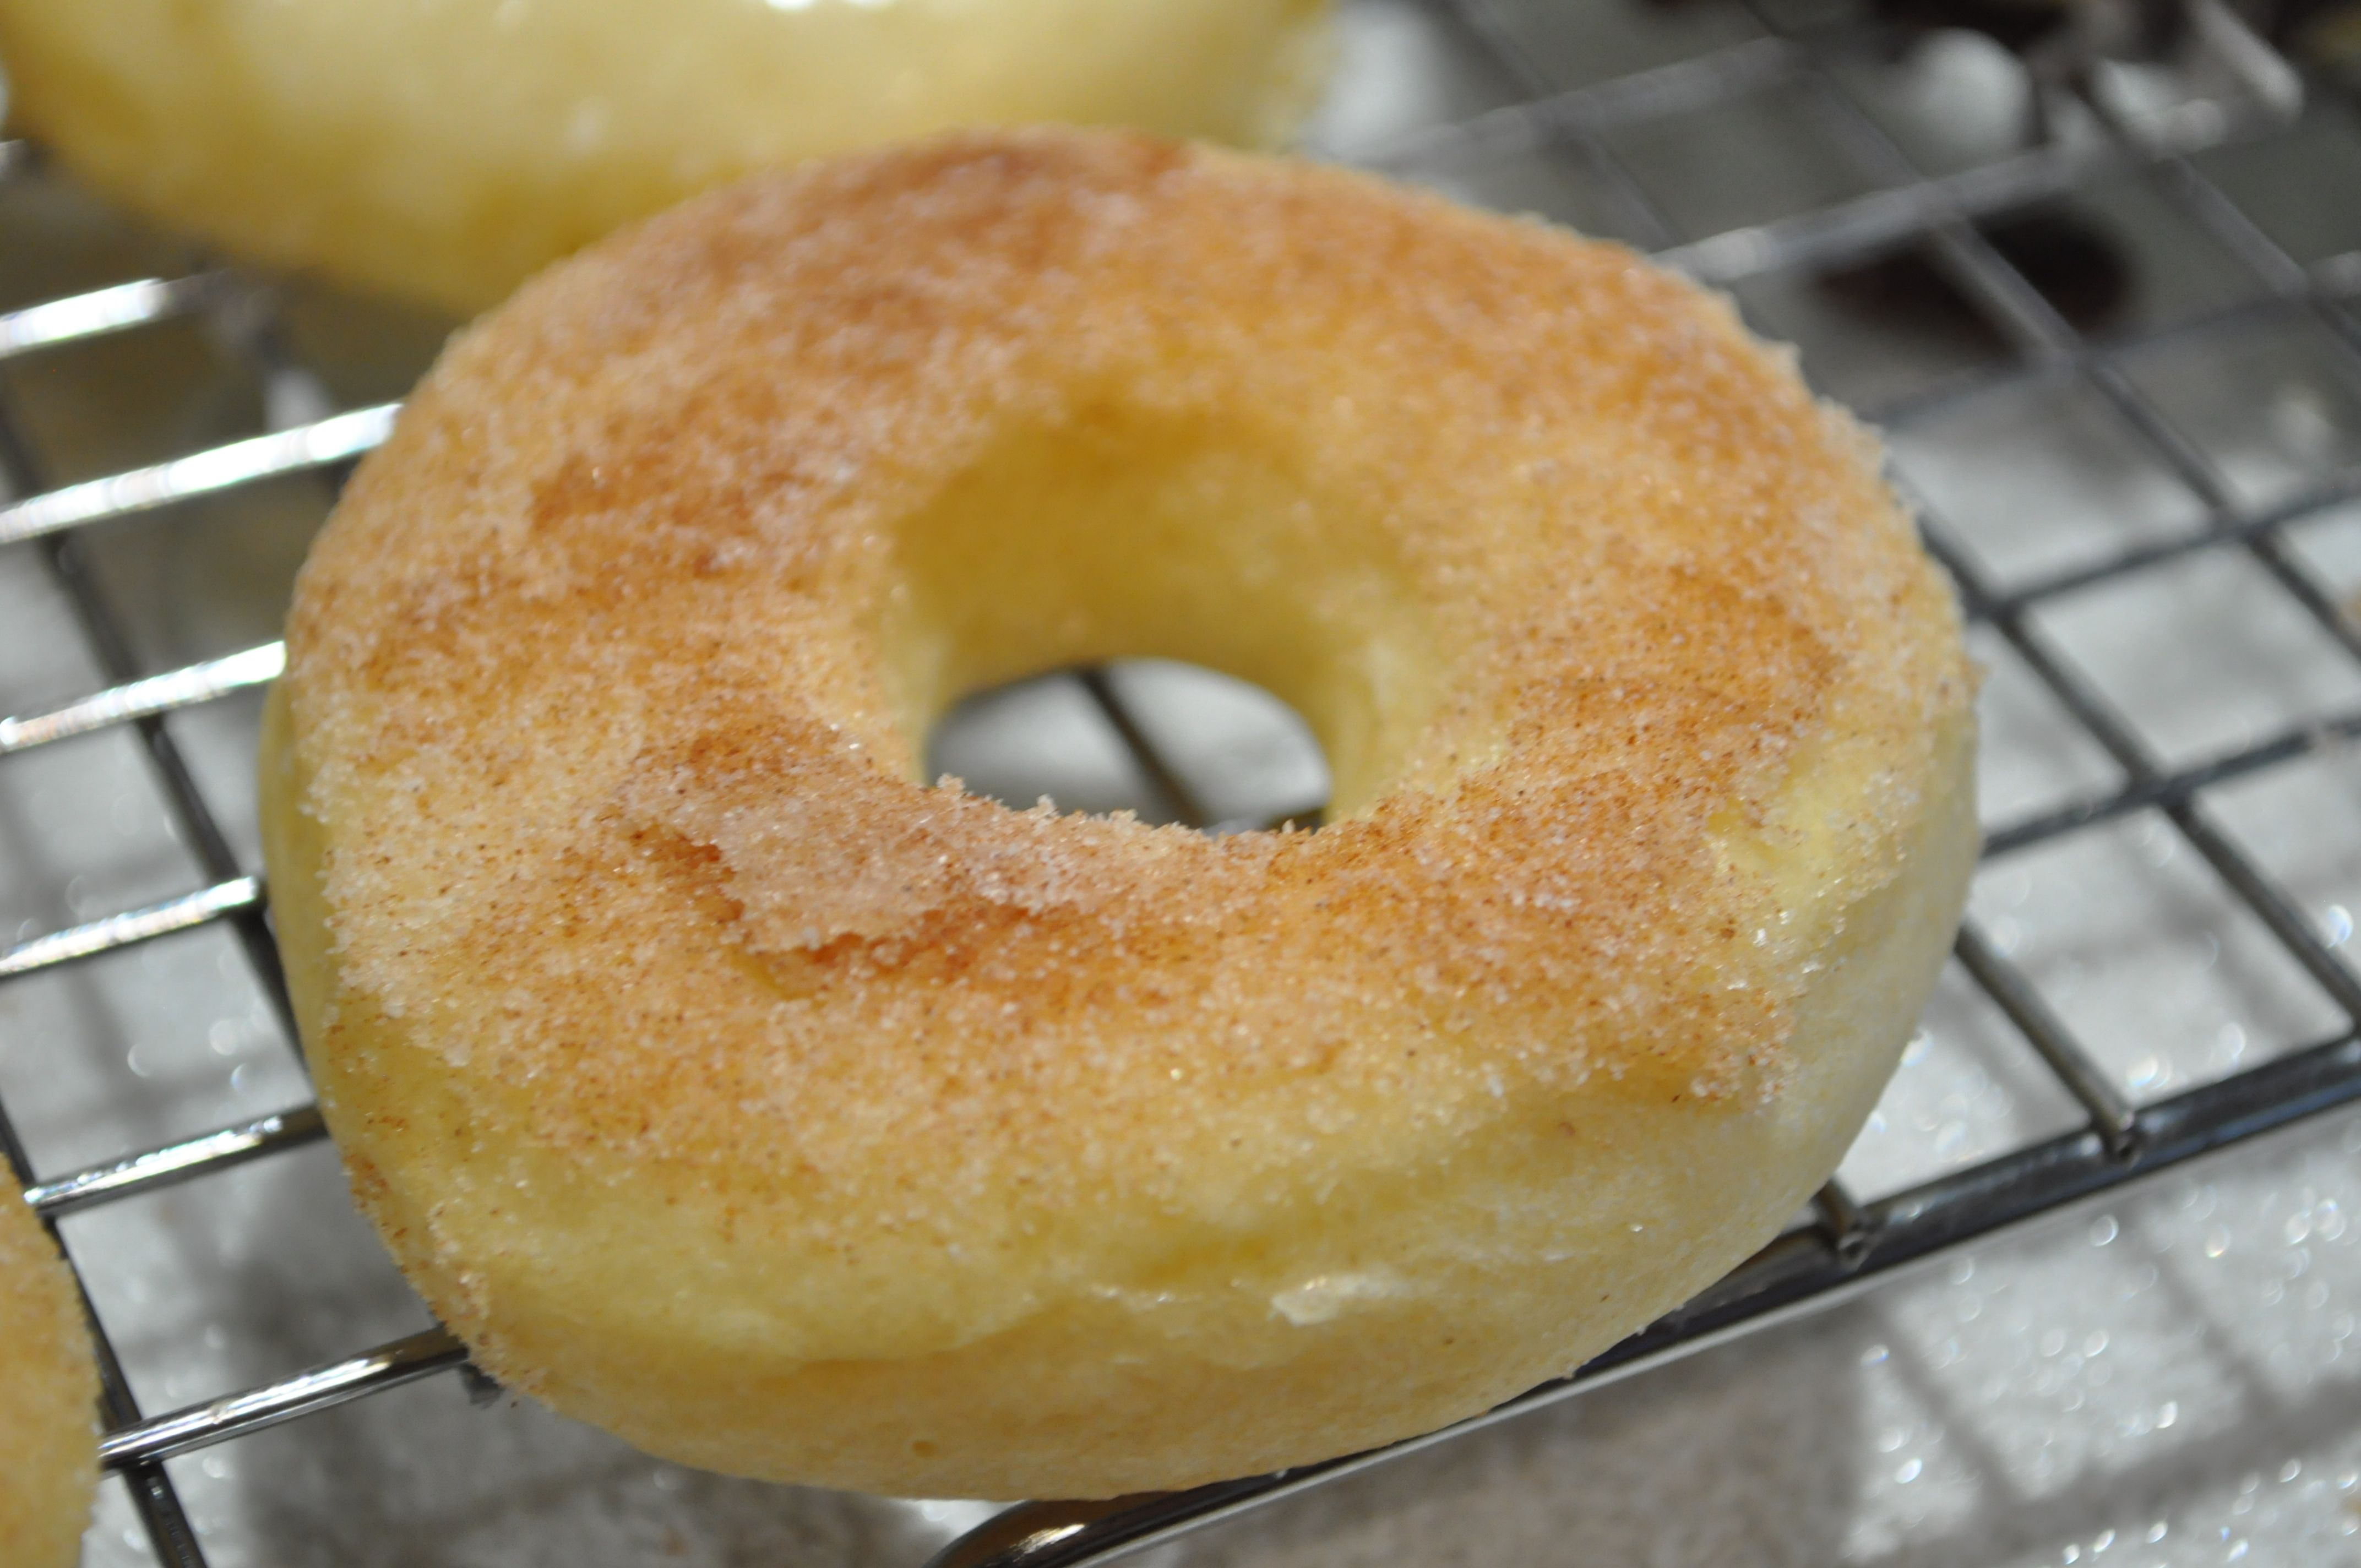 Baked Yeast Donuts - 13